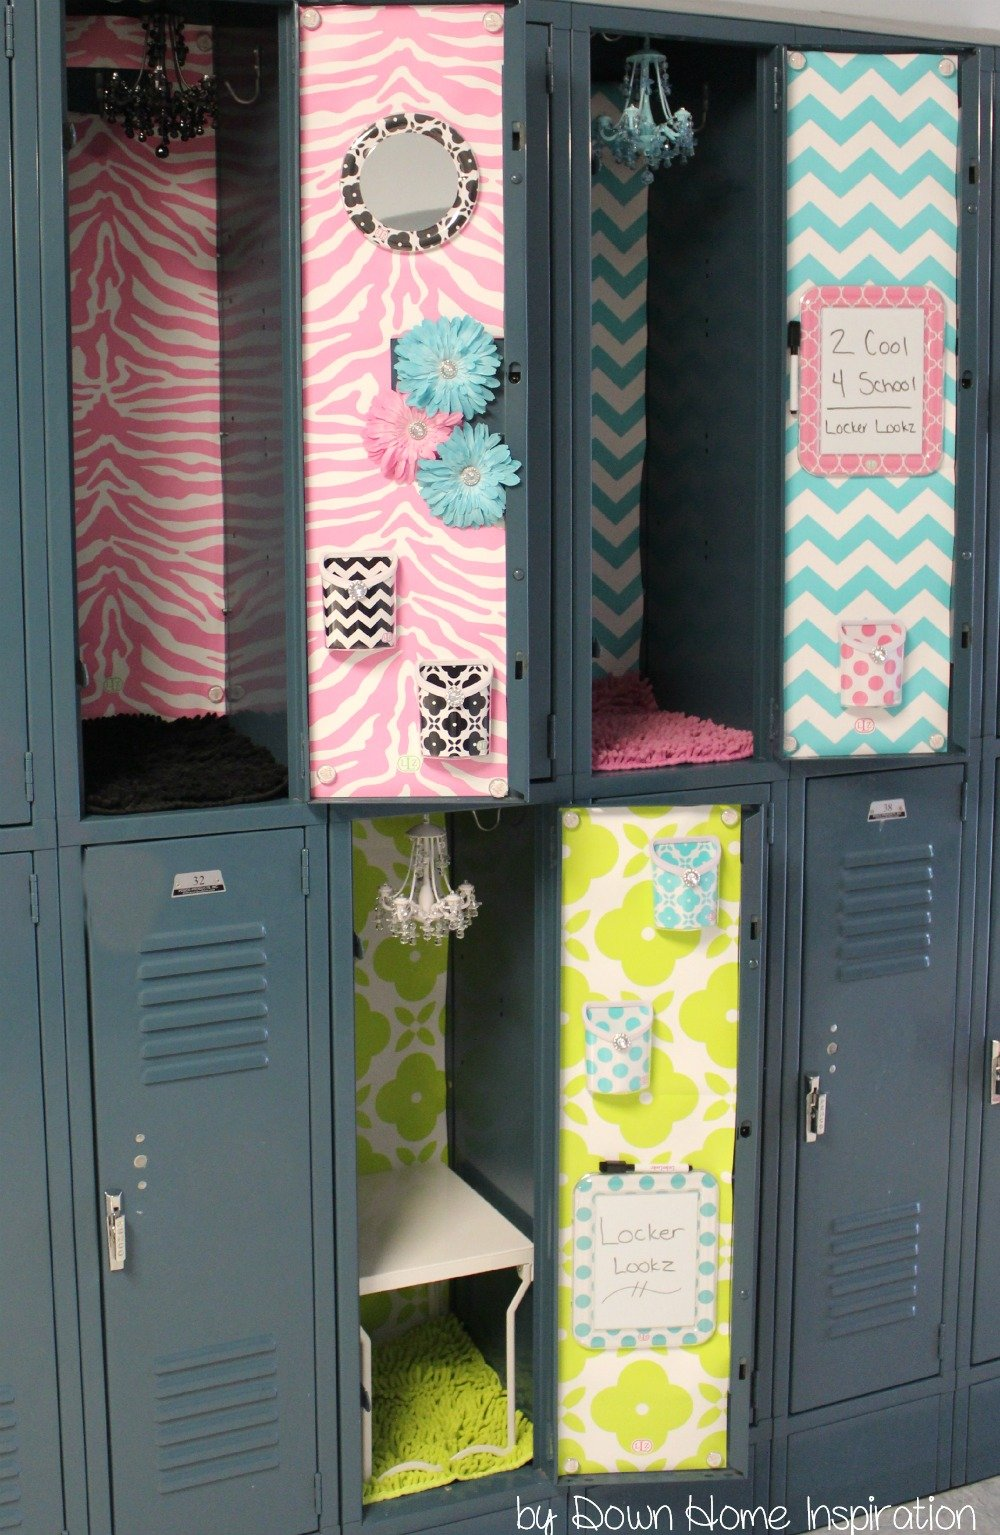 Be 2 Cool 4 School with LLZ by Locker Lookz   Down Home Inspiration 1000x1535